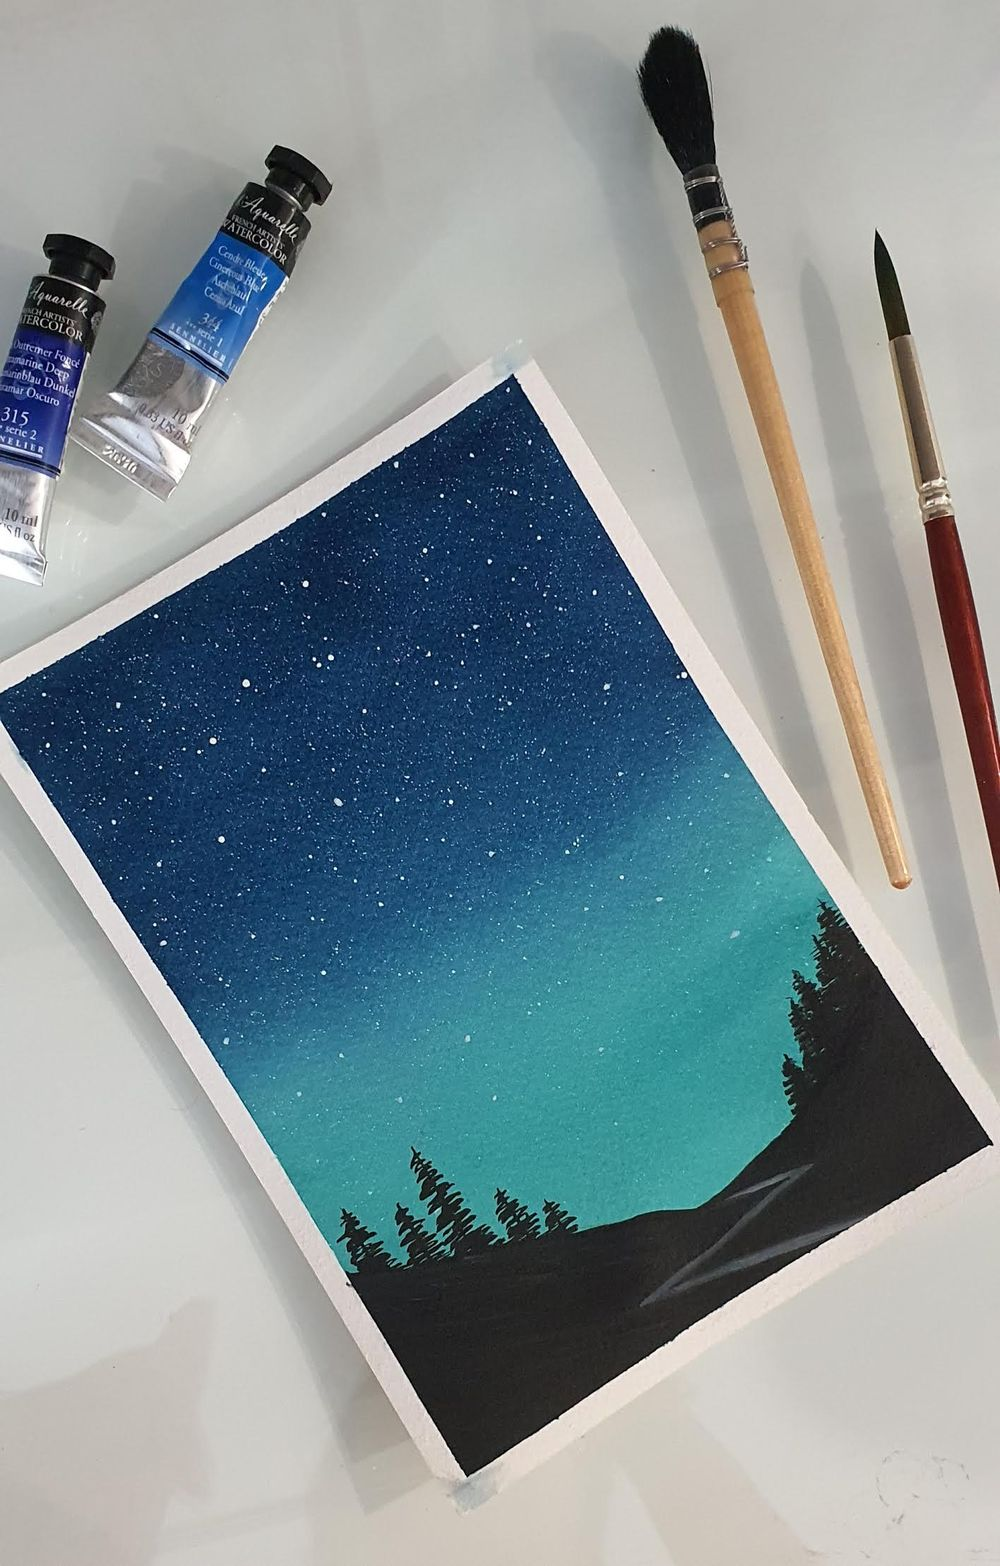 Watercolor Galaxies - image 2 - student project